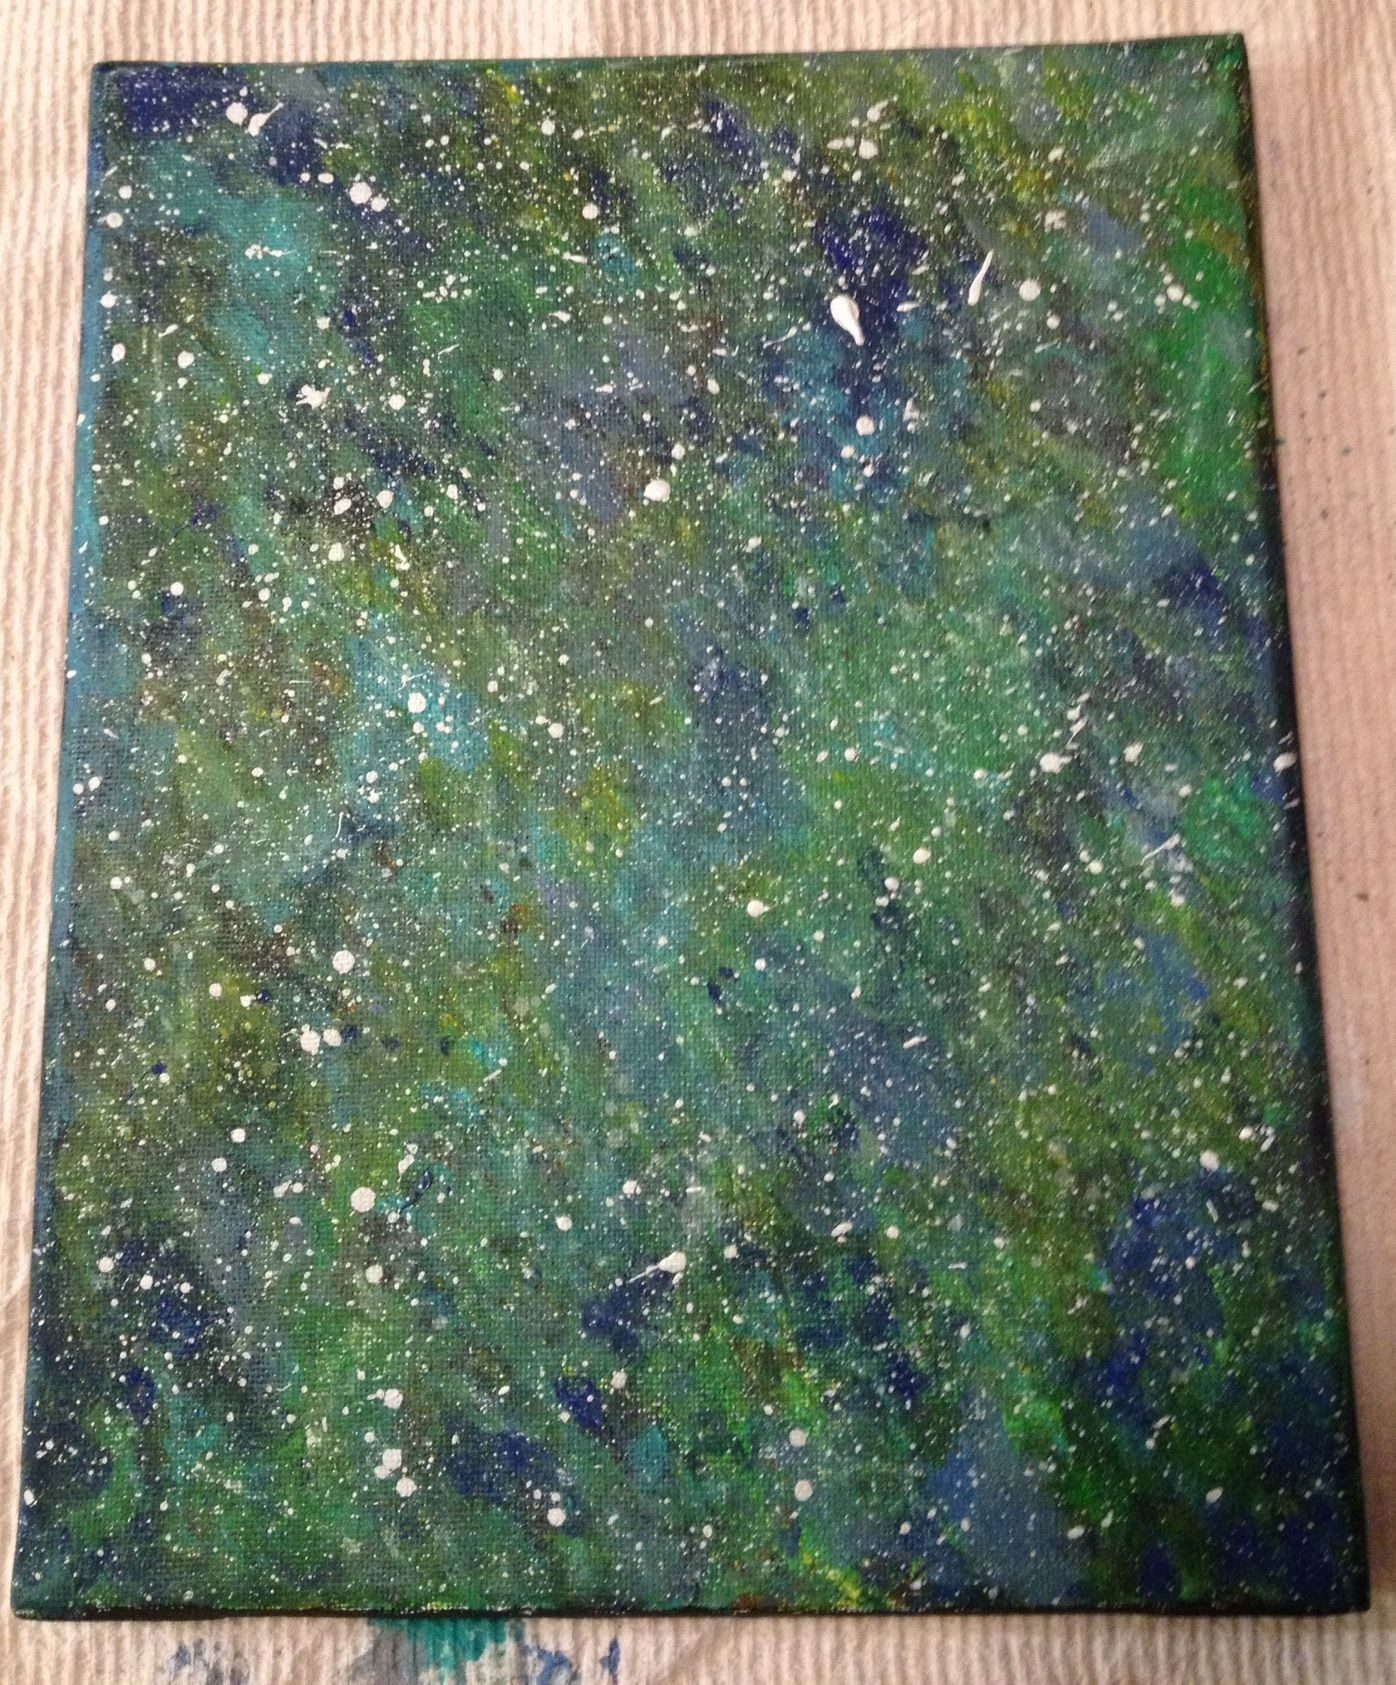 My depiction of space.